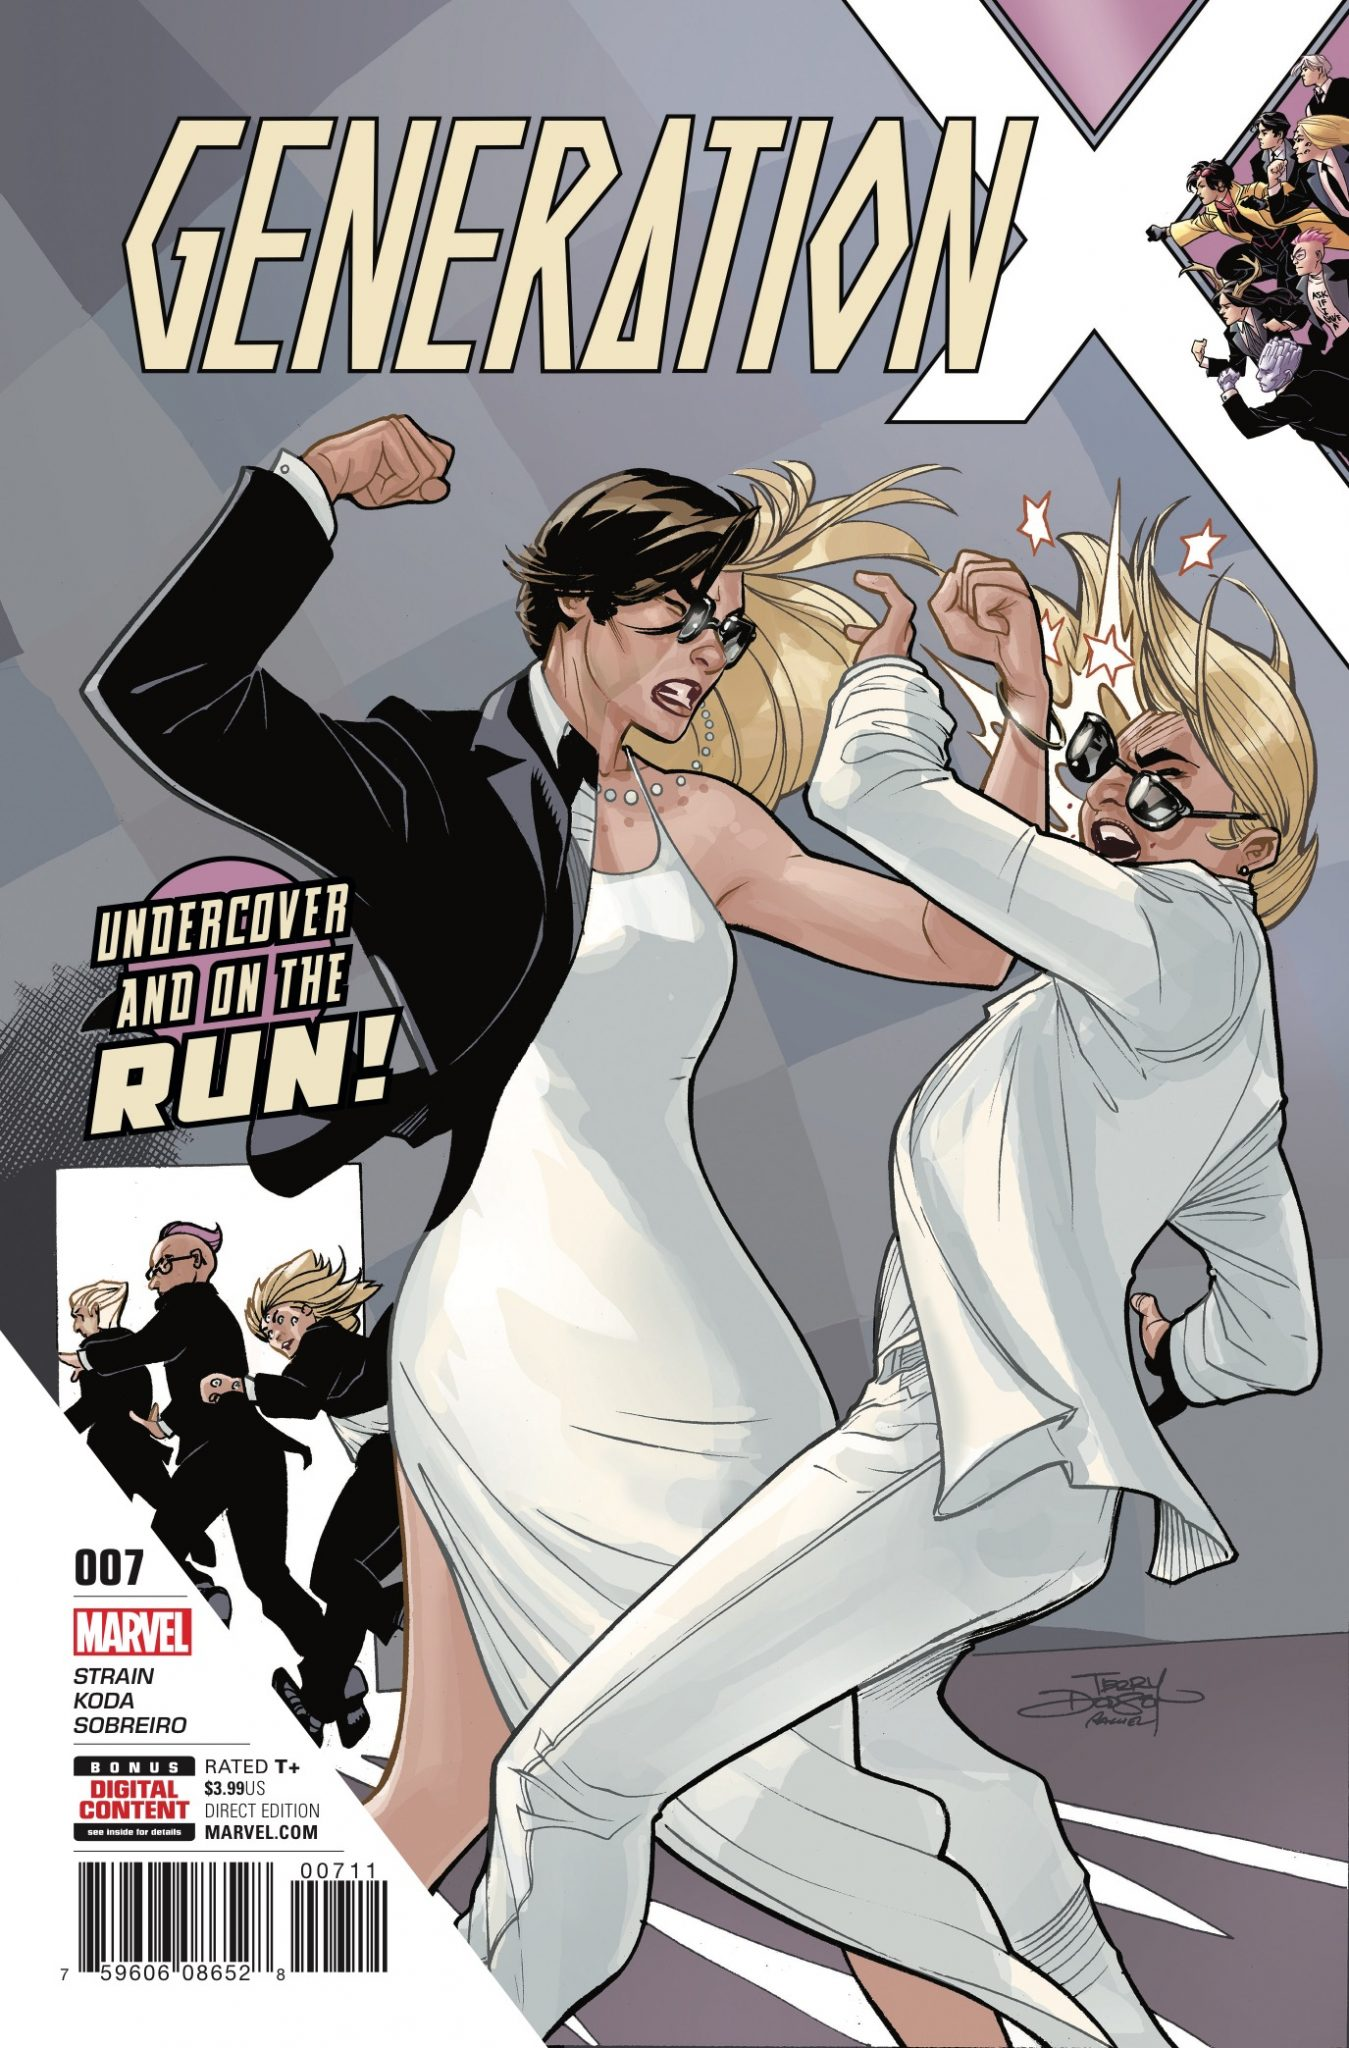 Generation X #7 Review